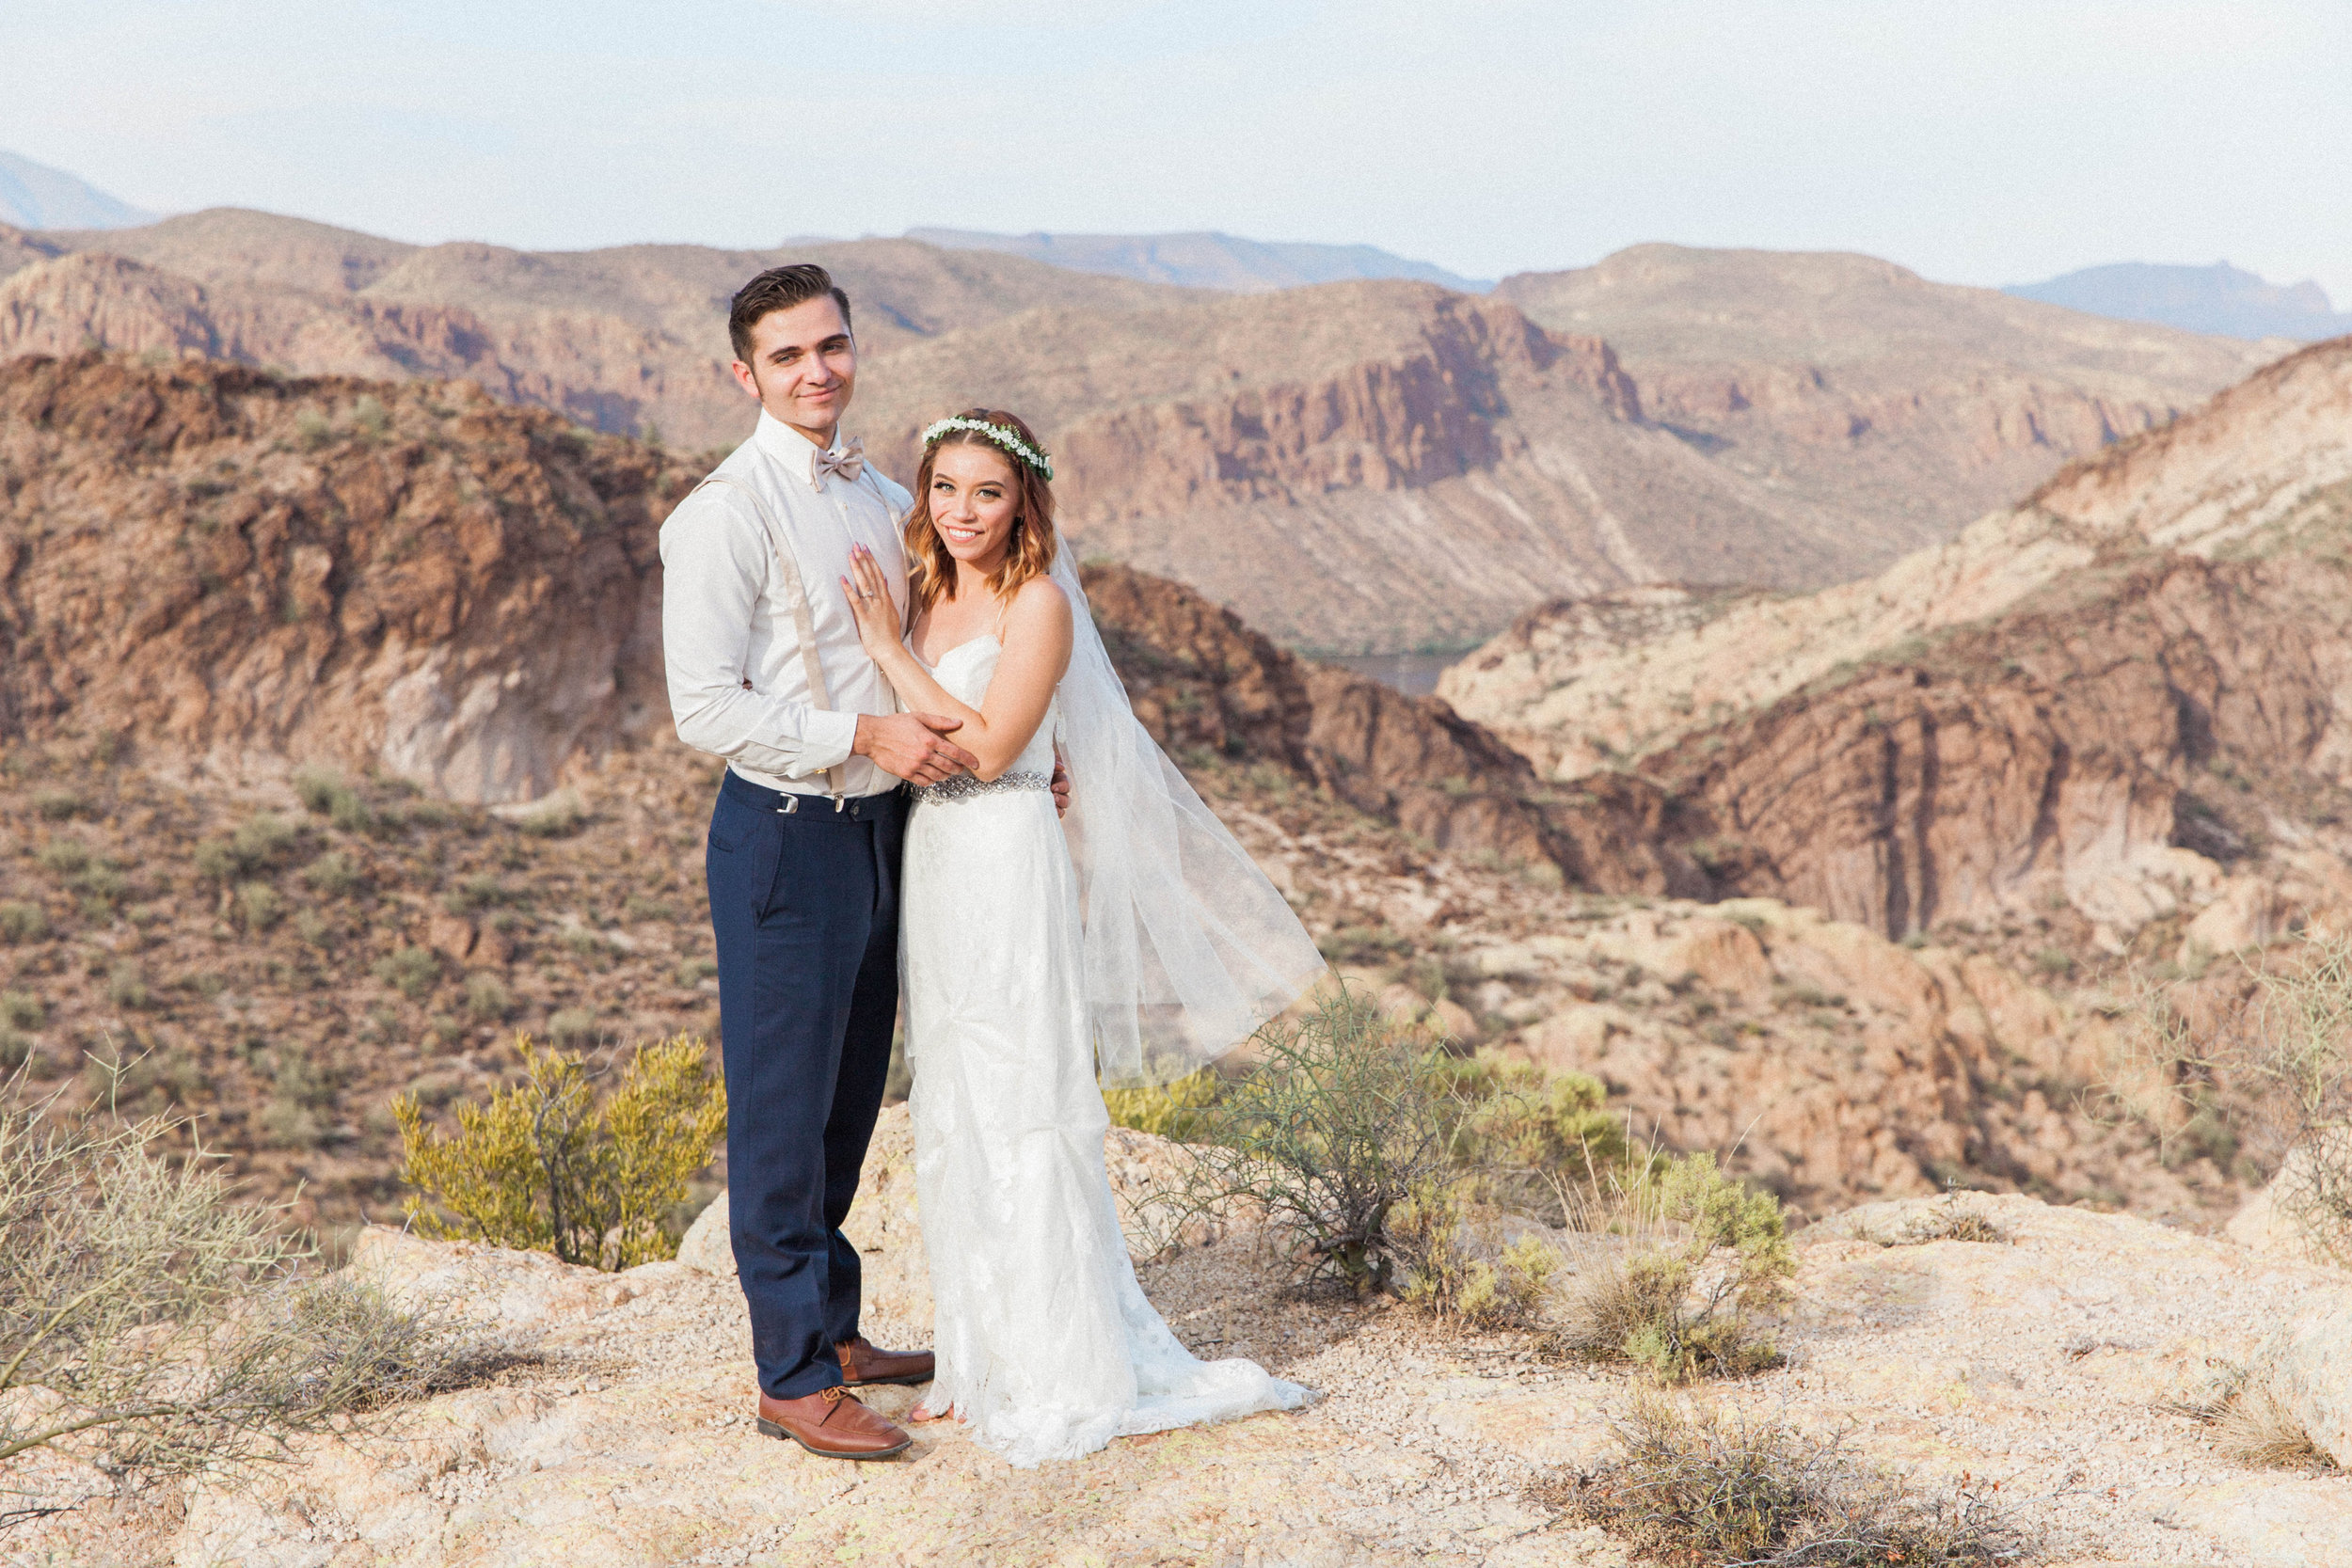 A Simple, DIY Arizona Wedding - Shaleena Danielle Photography -- Wedding Blog - The Overwhelmed Bride